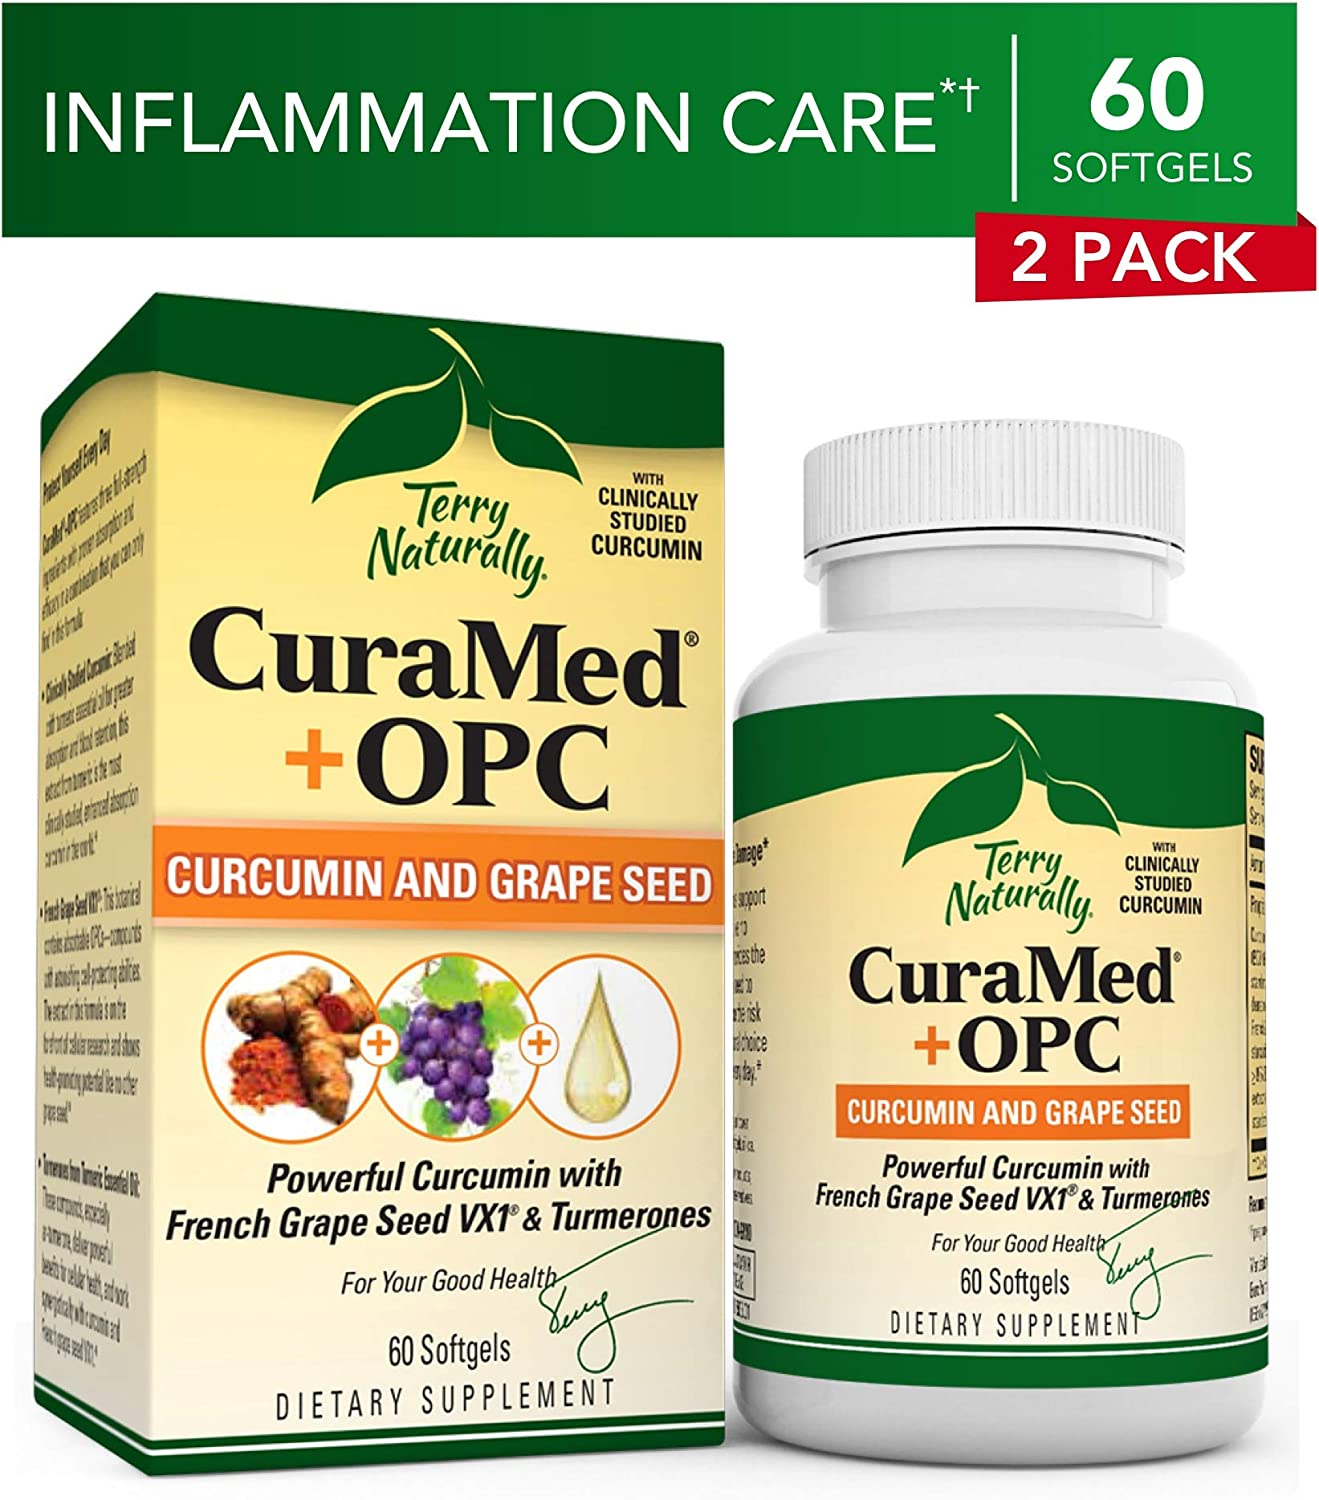 Terry Naturally CuraMed OPC 2 Pack – 60 Softgels – BCM-95 Curcumin French Grape Seed VX1 Supplement, Supports Brain, Heart, Colon, Prostate Liver – Non-GMO, Gluten-Free – 60 Total Servings